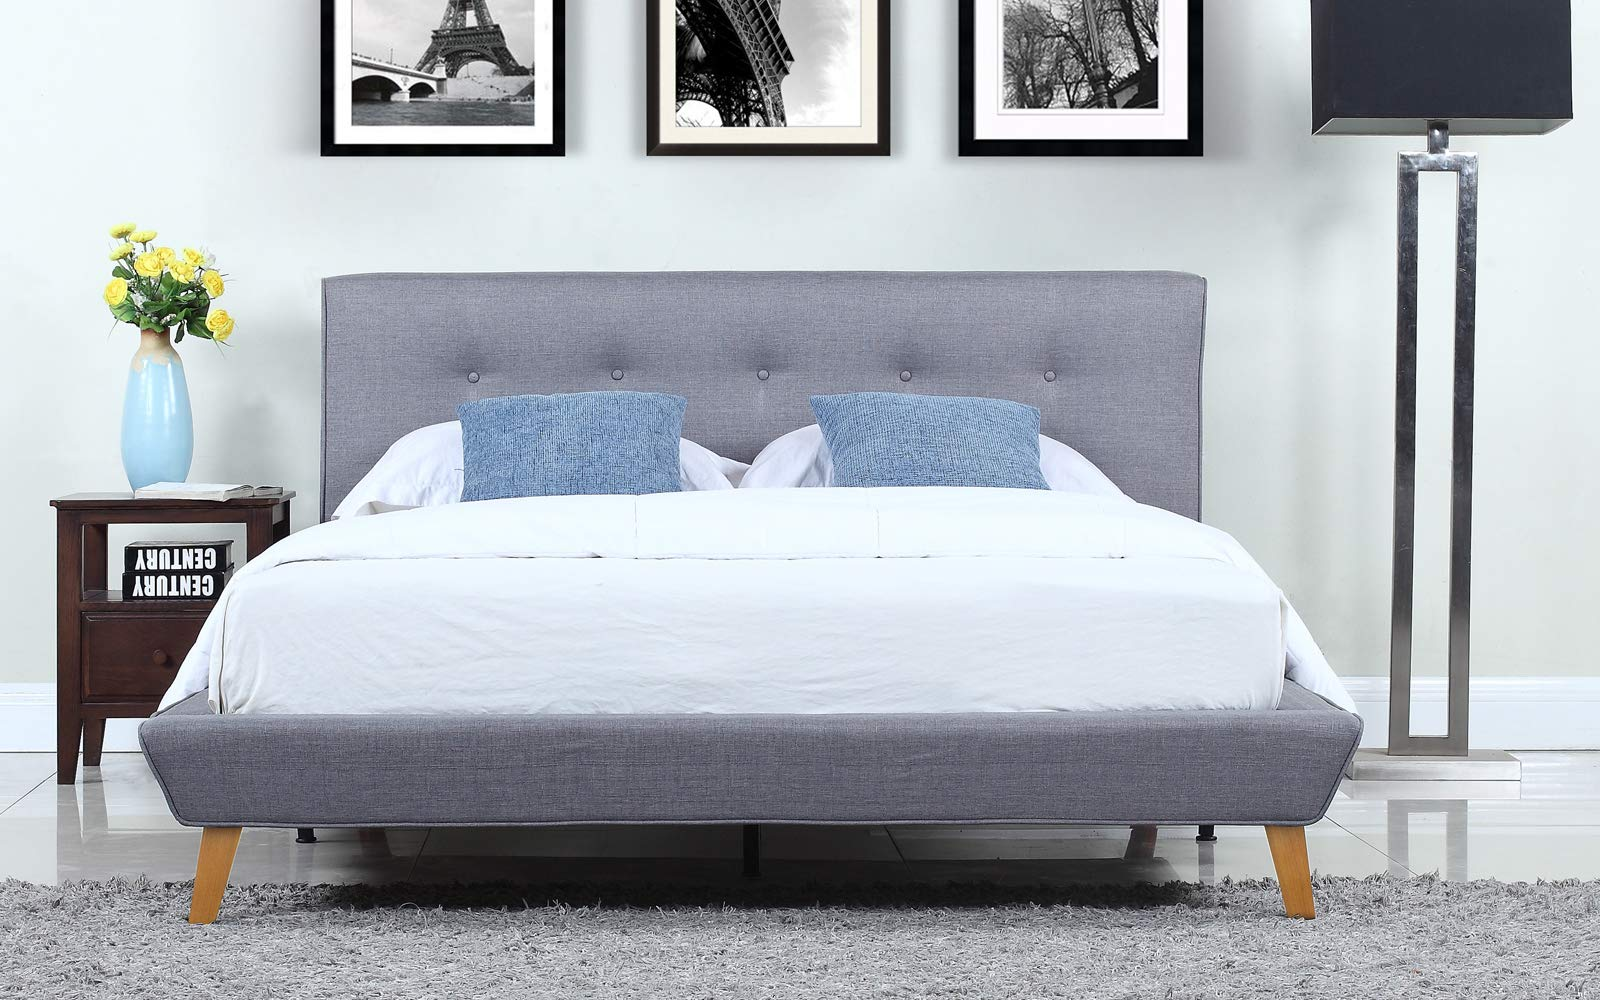 Mid-Century Grey Linen Low Profile Platform Bed Frame with Tufted Headboard Design (Queen) by Divano Roma Furniture